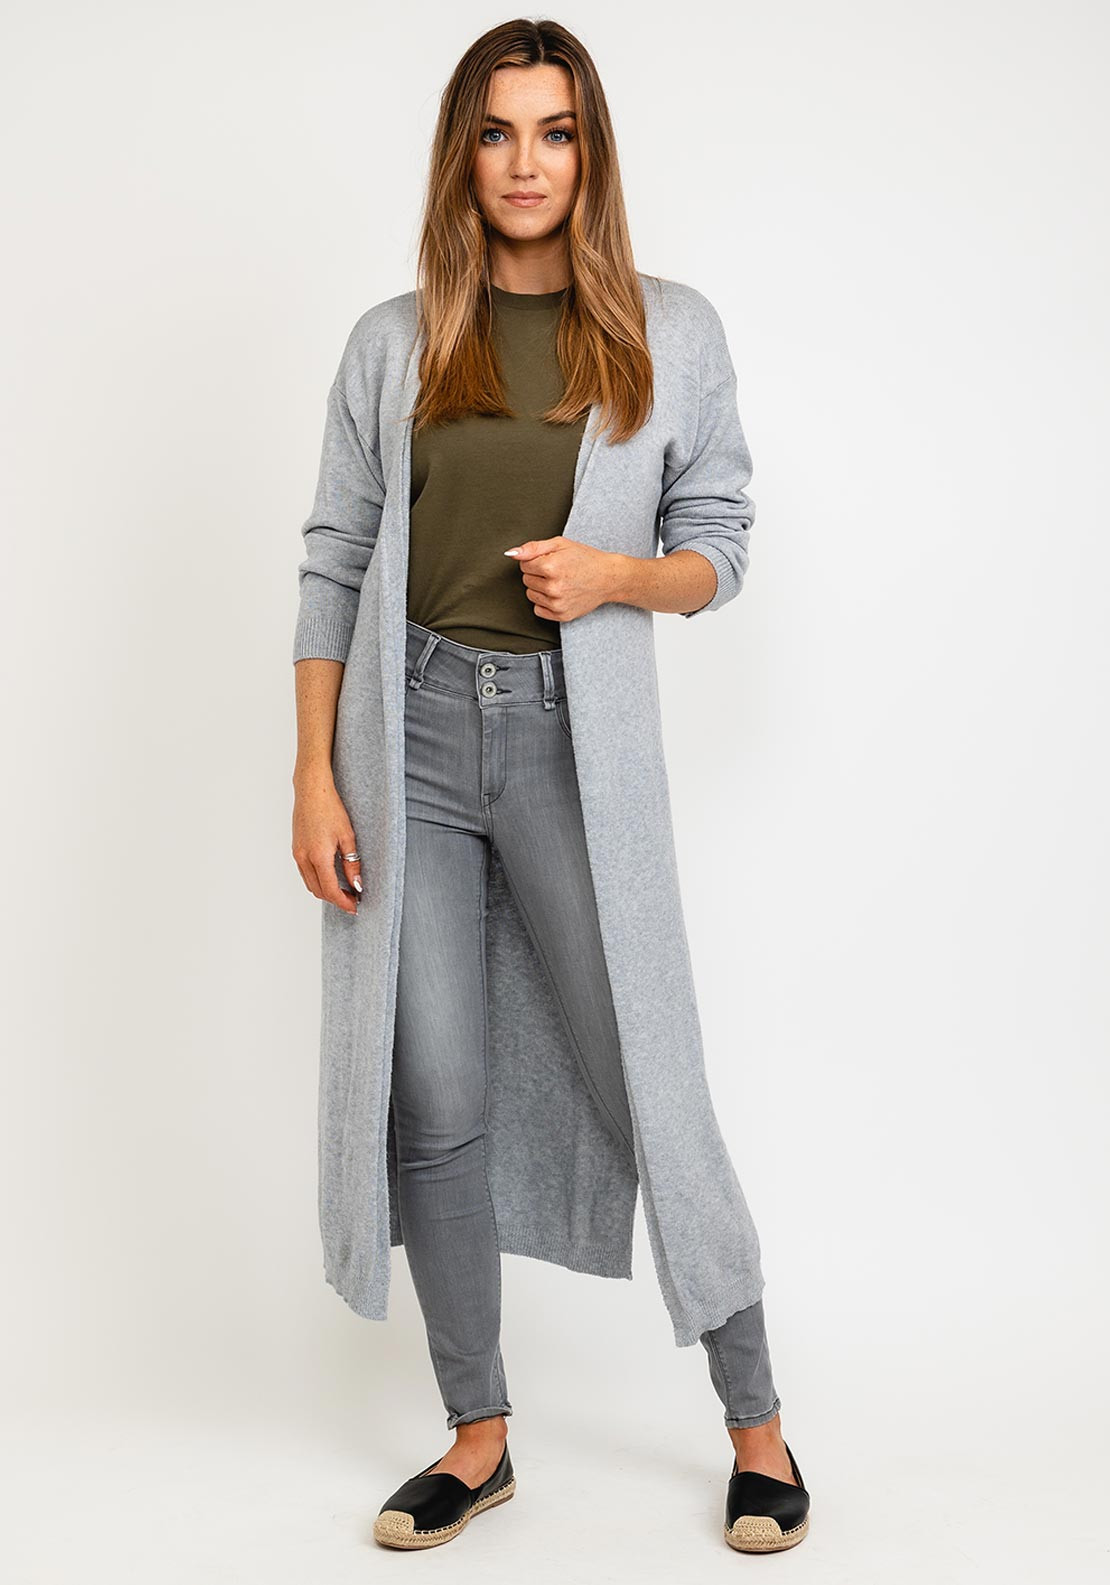 Kate & Pippa Monza Long Line Open One Size Cardigan, Grey